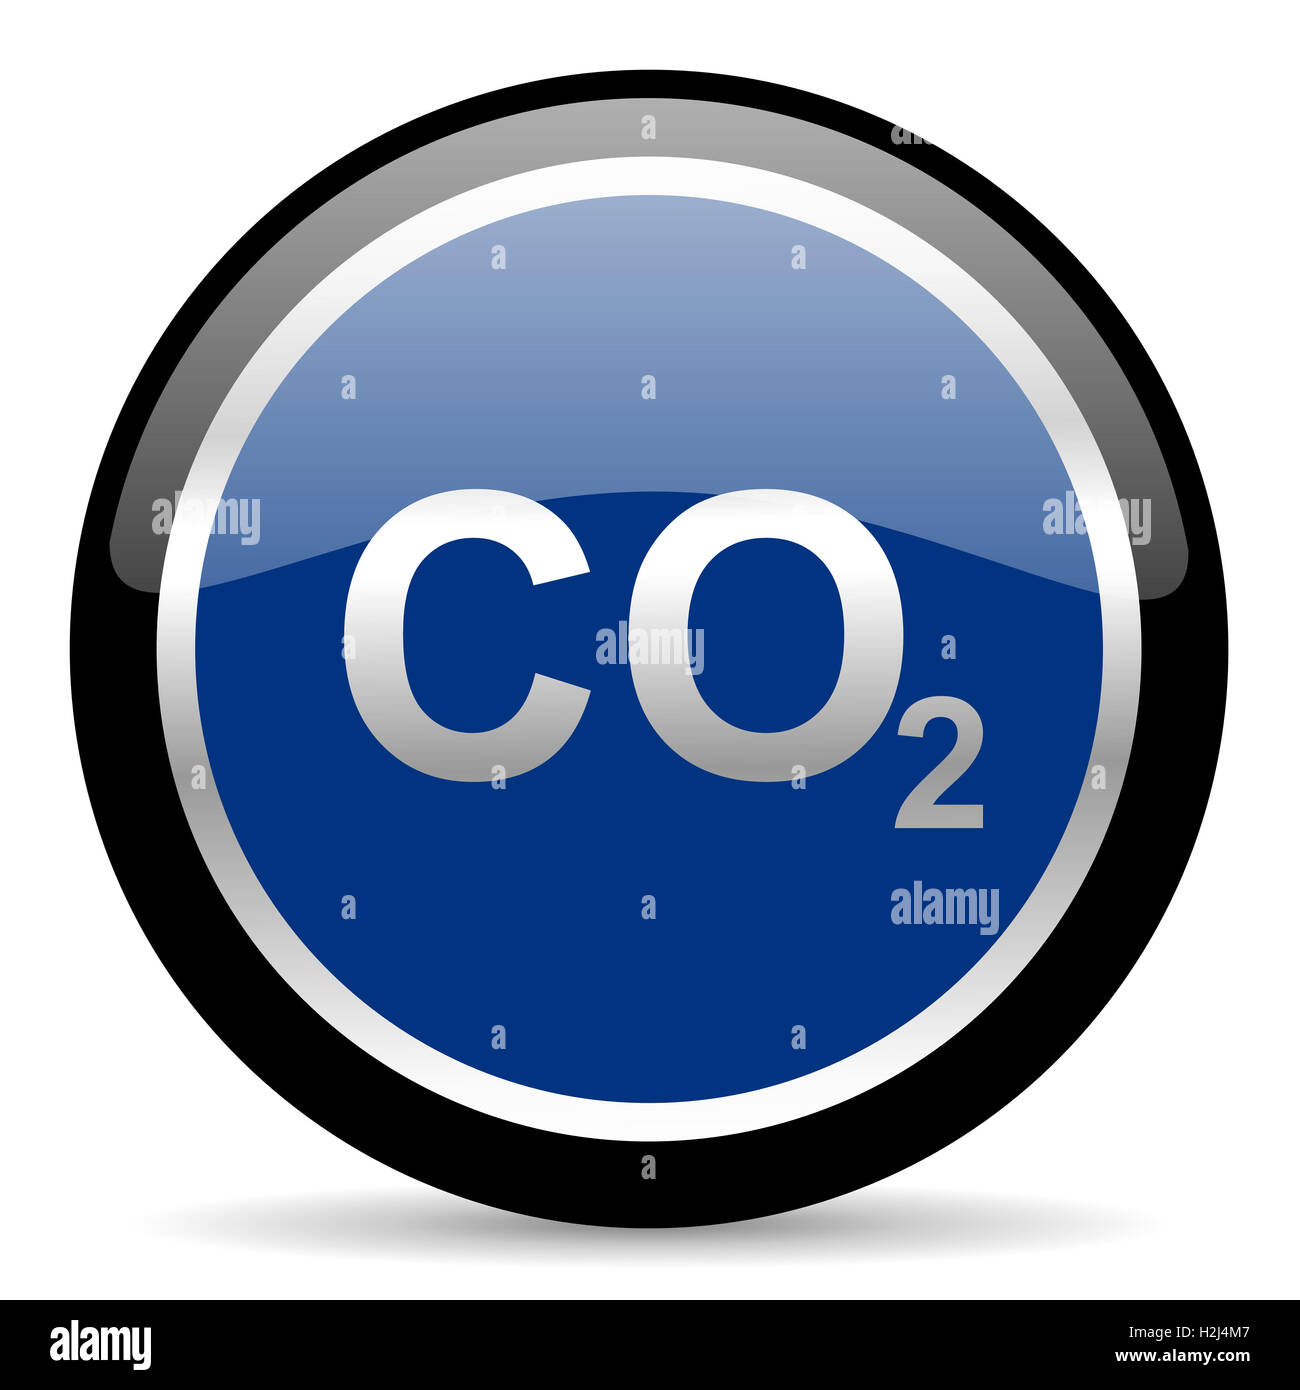 carbon dioxide icon - Stock Image